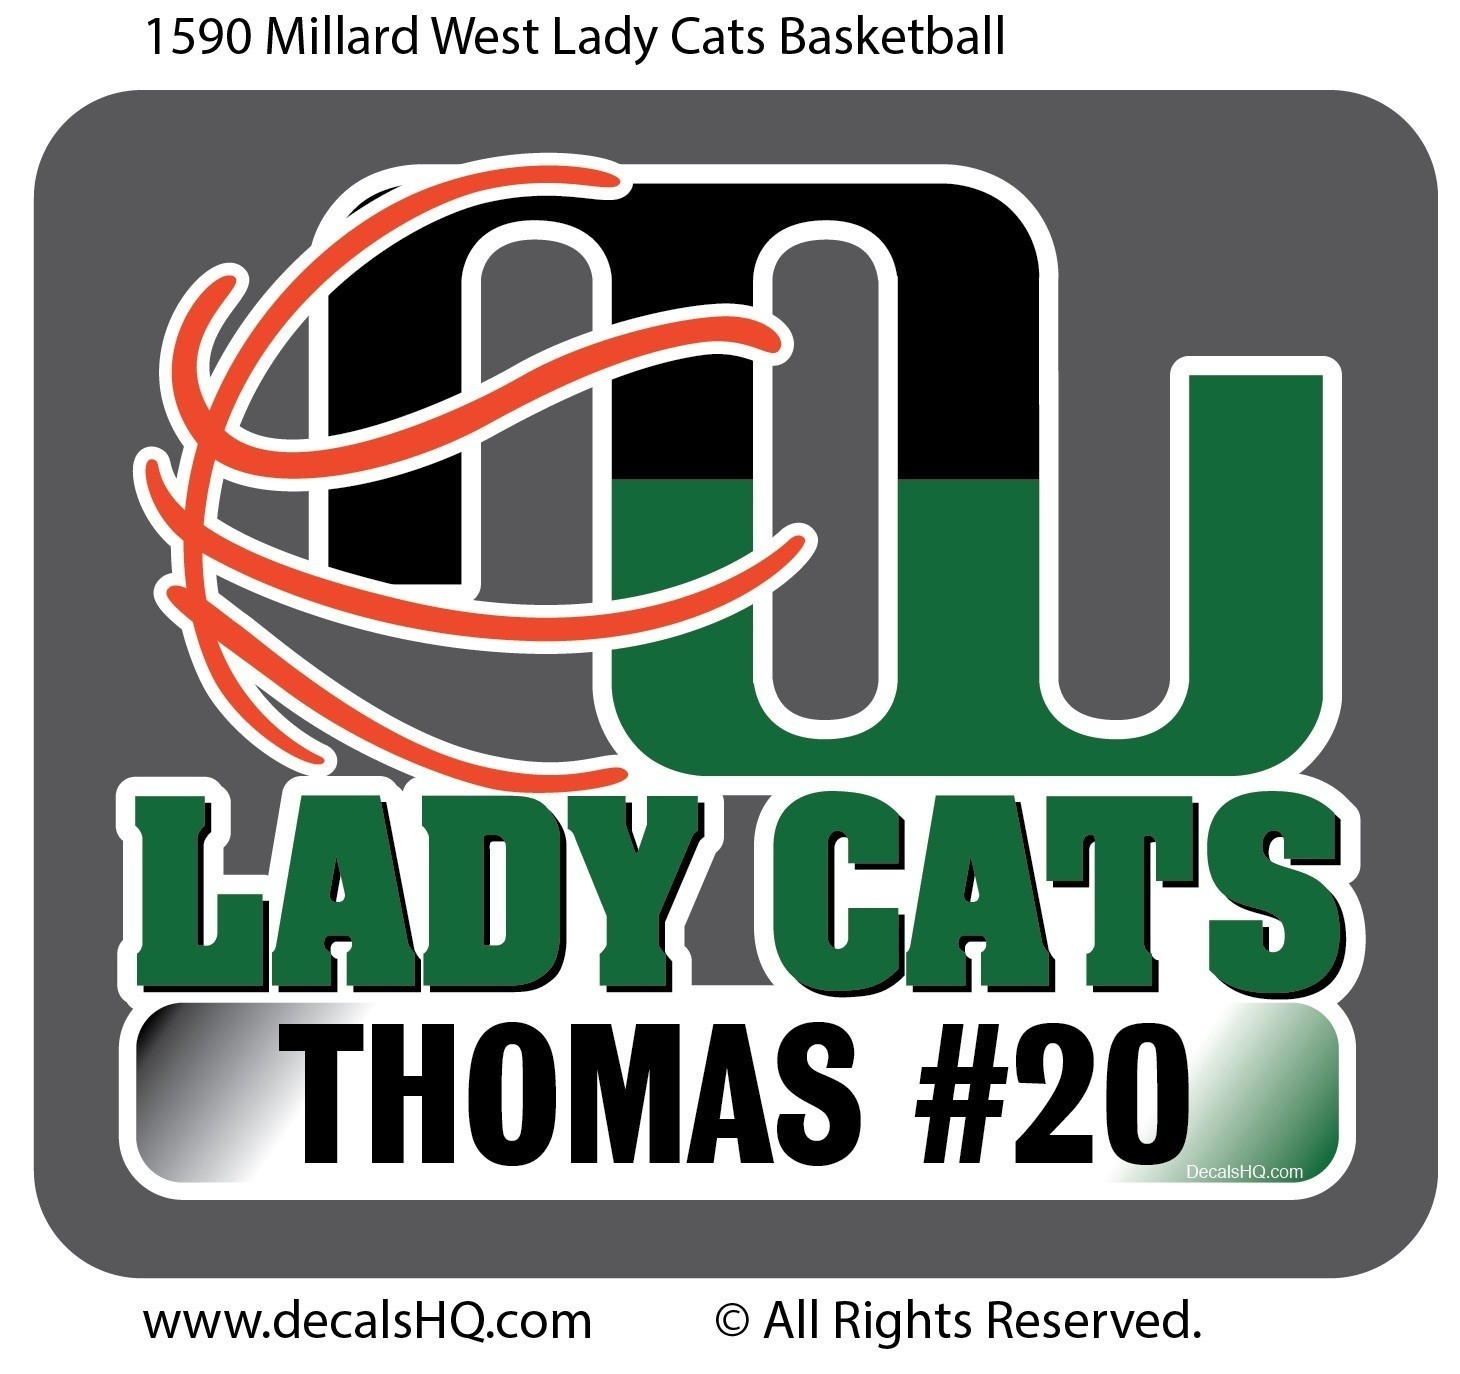 Millard West Lady Cats Basketball